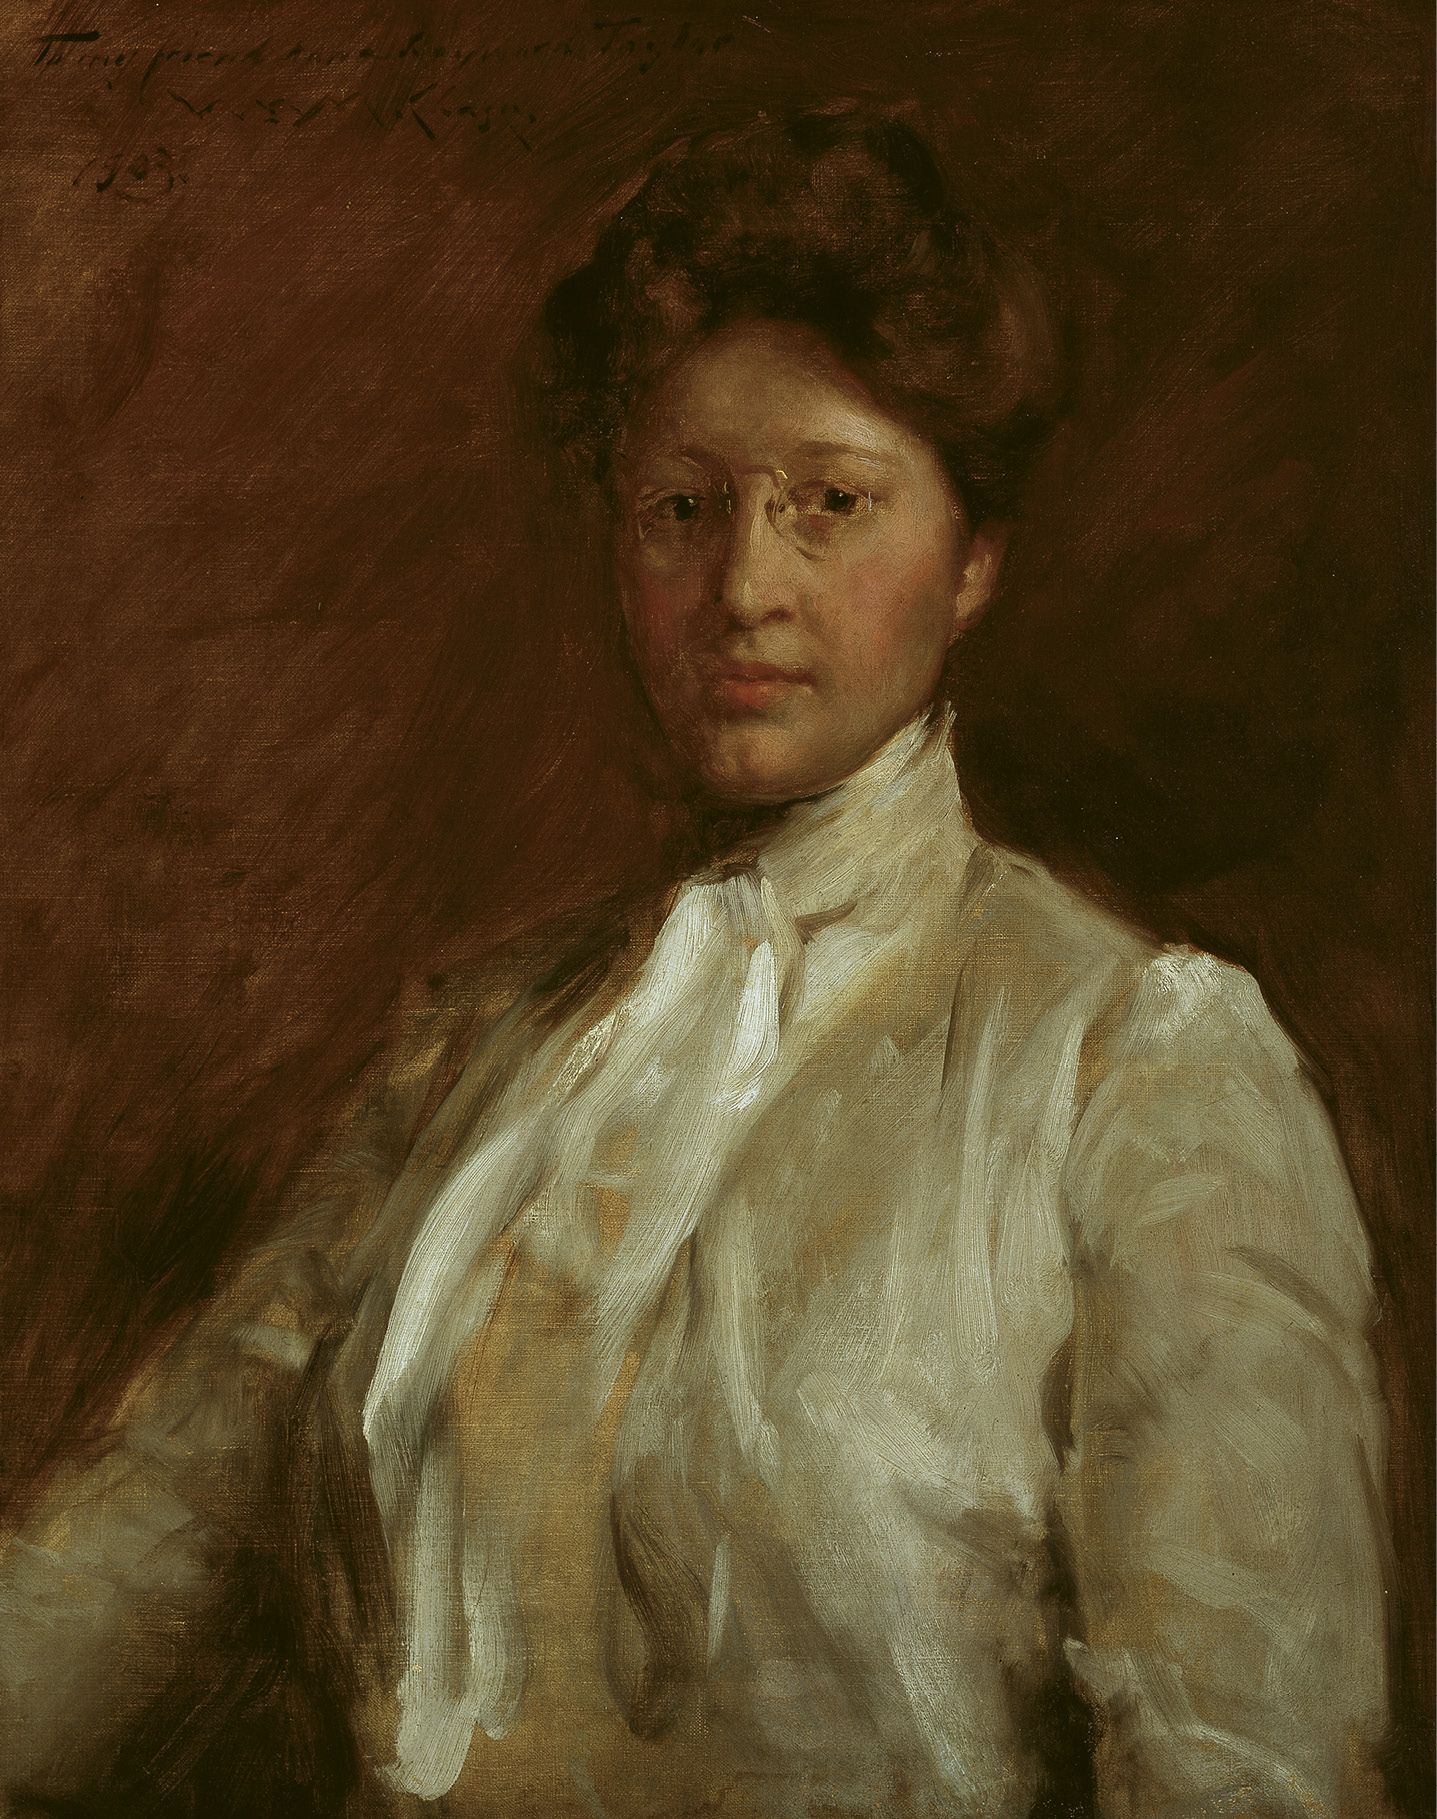 Taylor studied with renowned portrait artist and American Impressionist William Merritt Chase in Holland during the summer of 1903. Chase later visited her family in Columbia and painted three portraits of them, including this one of Anna.